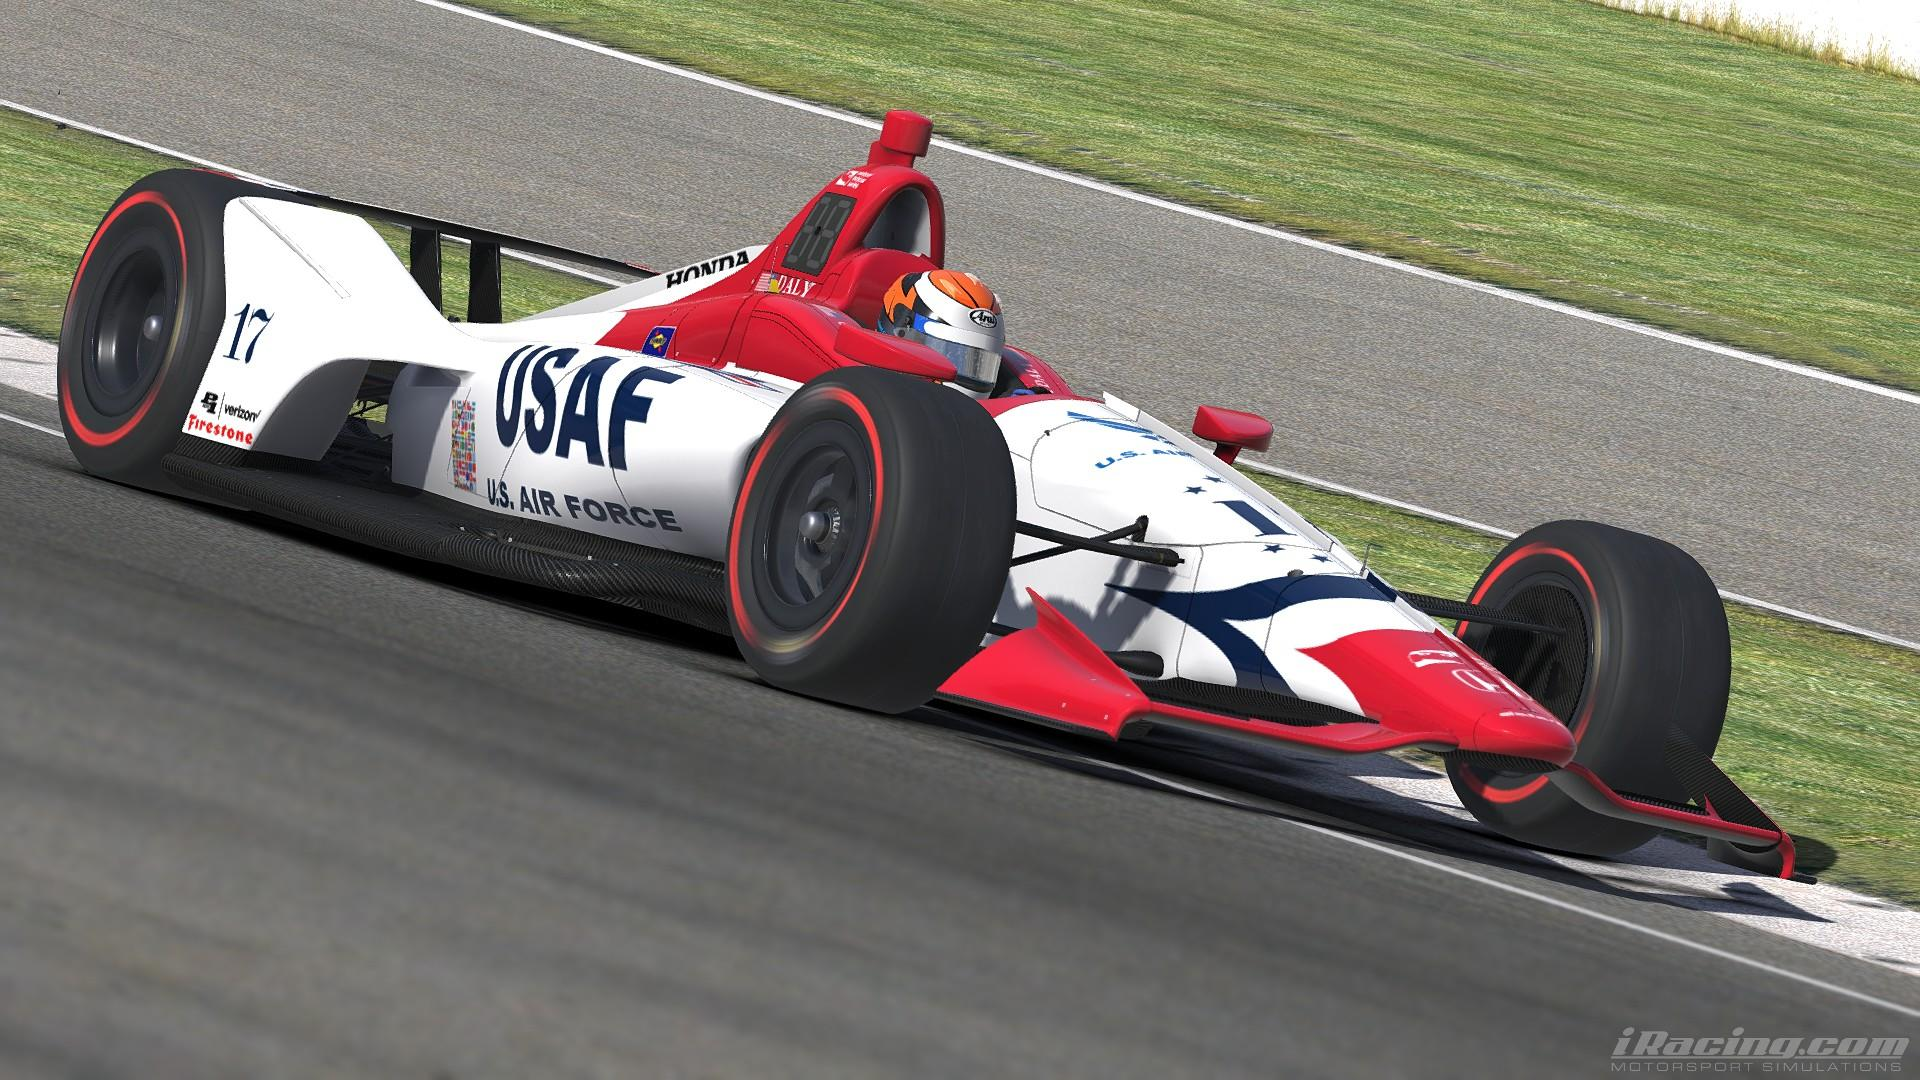 Sim Racing: Drivers ready for iRacing Indianapolis 500